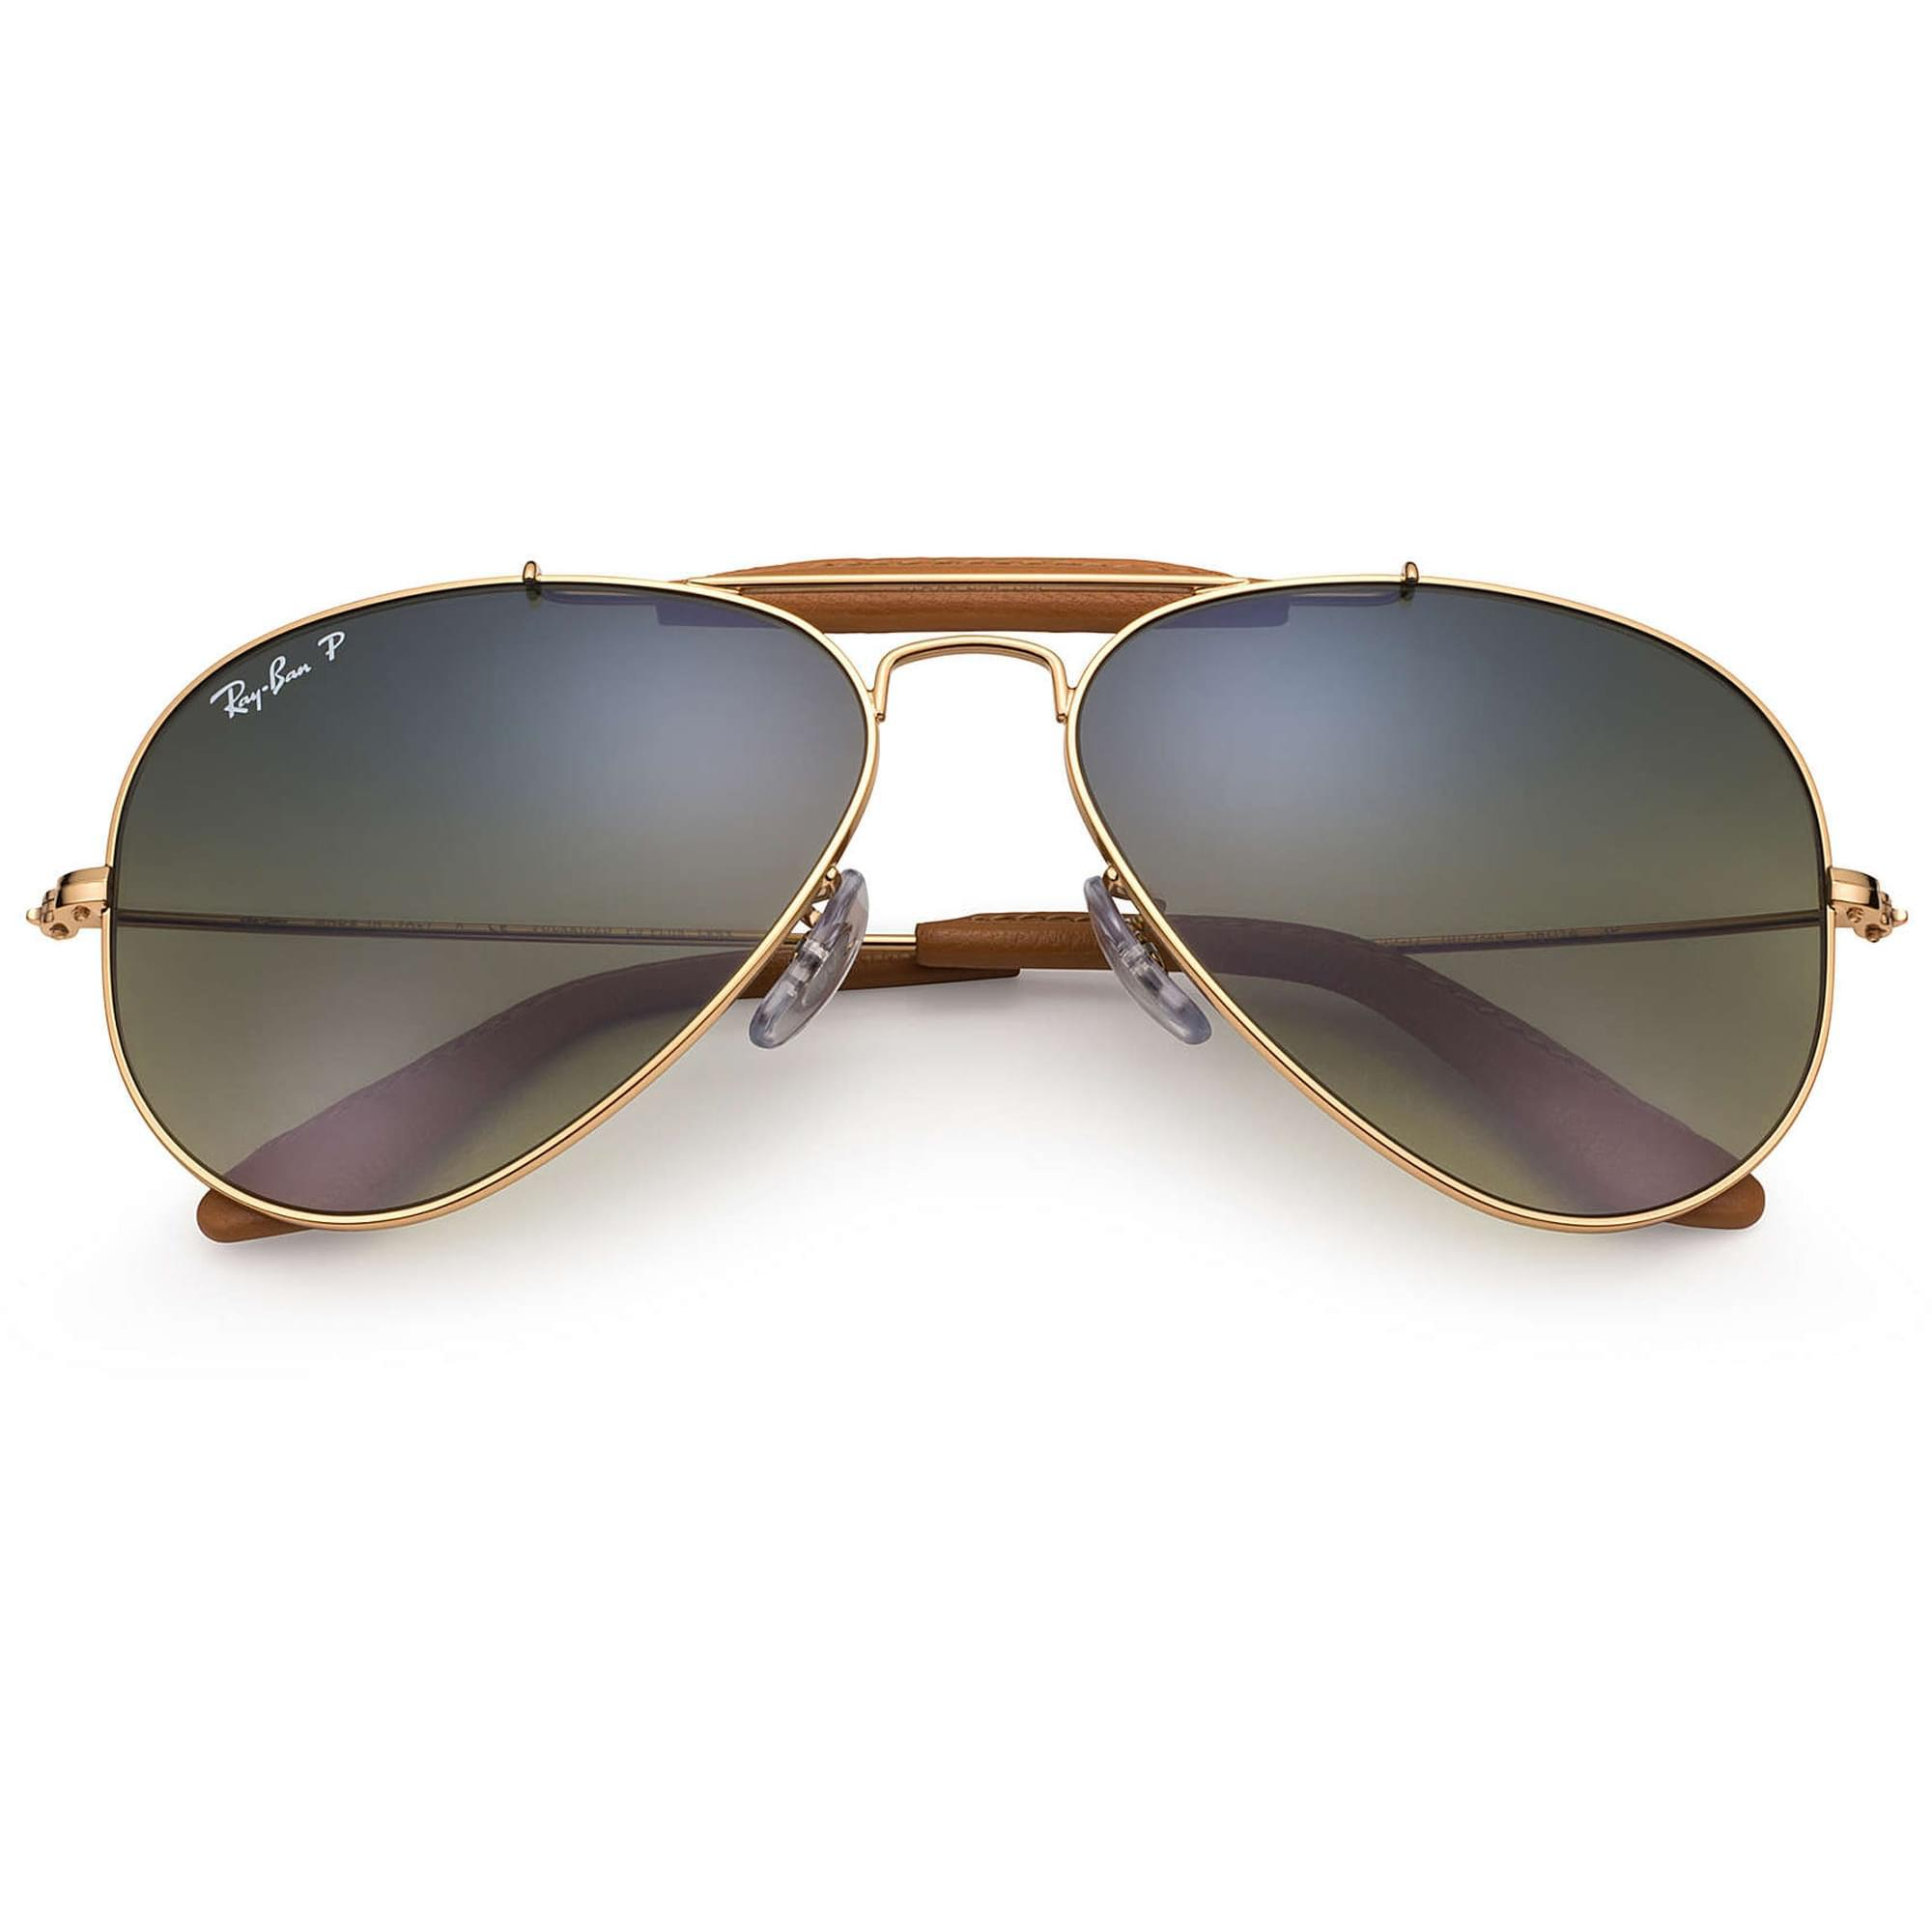 03f8b28ad6 Ray-Ban - Metallic Gold Outdoorsman Craft Aviator Sunglasses - Green  Classic G-15. View fullscreen